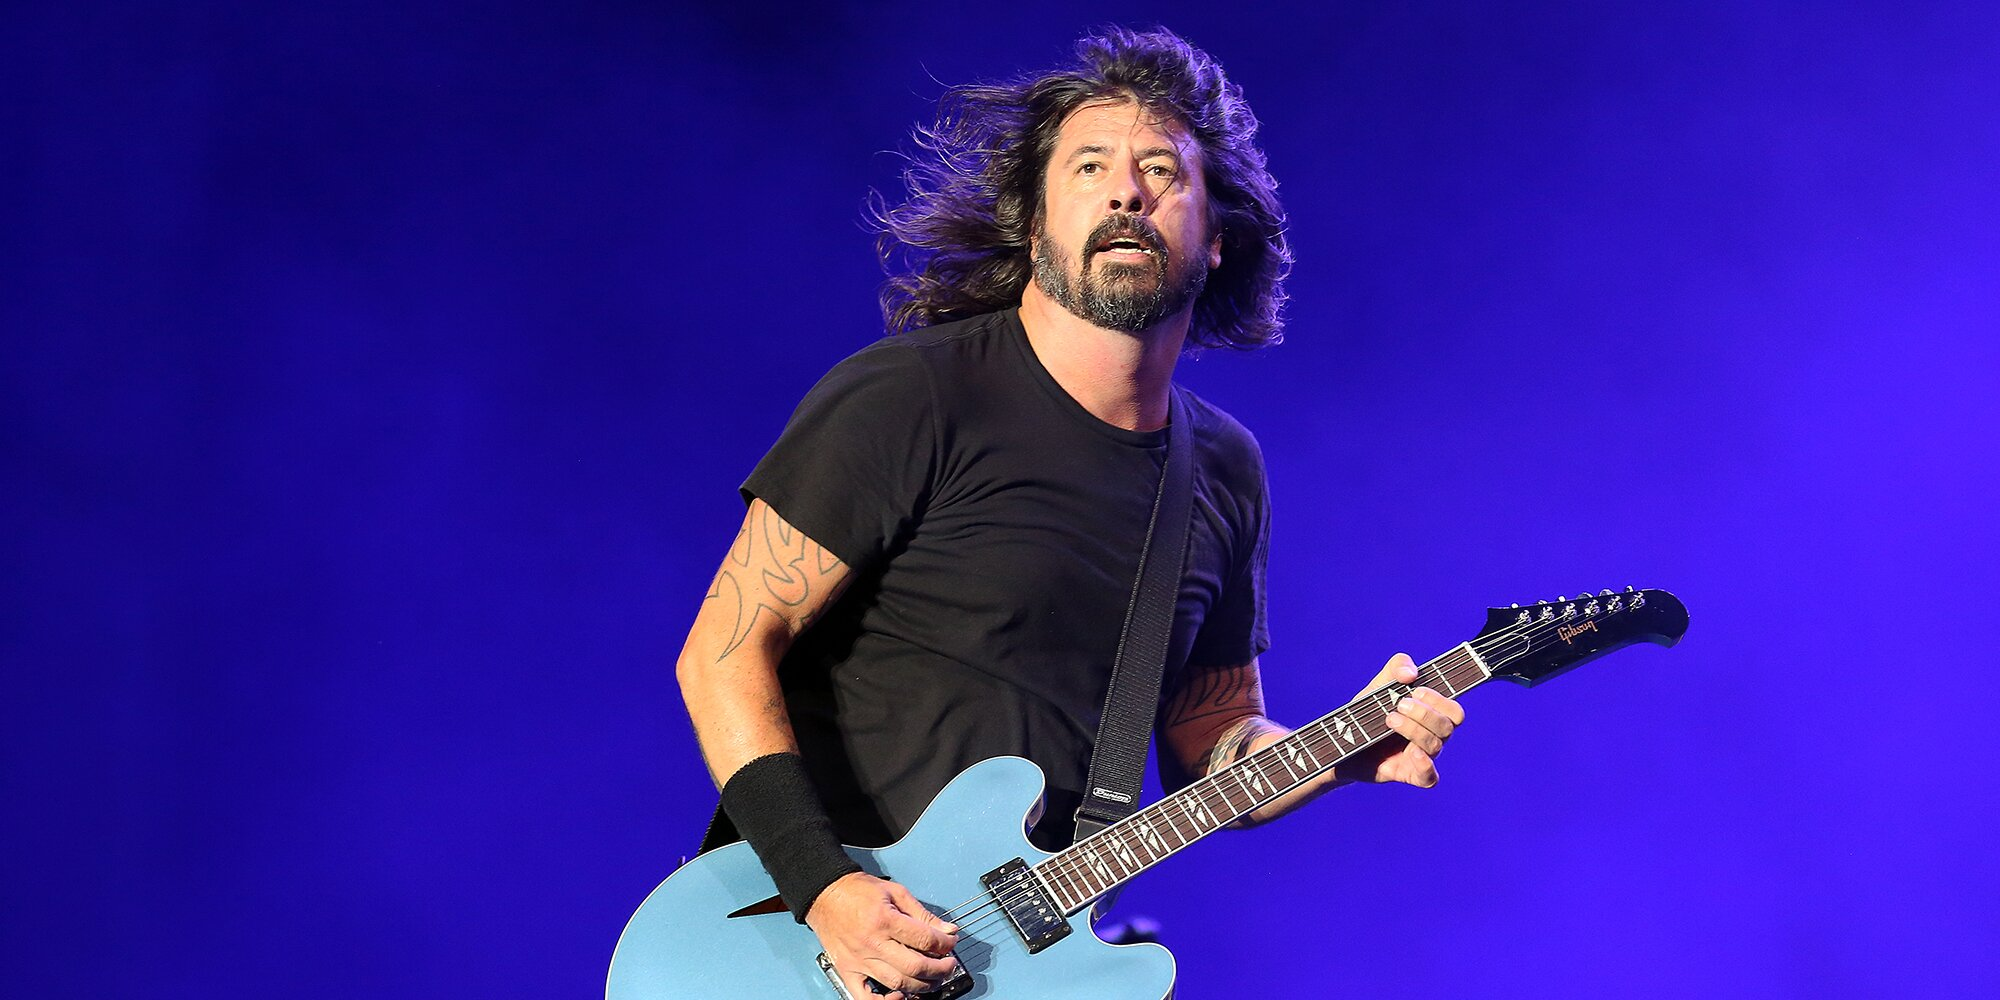 The Foo Fighters get groovy with a cover of The Bee Gees' disco hit 'You Should Be Dancing'